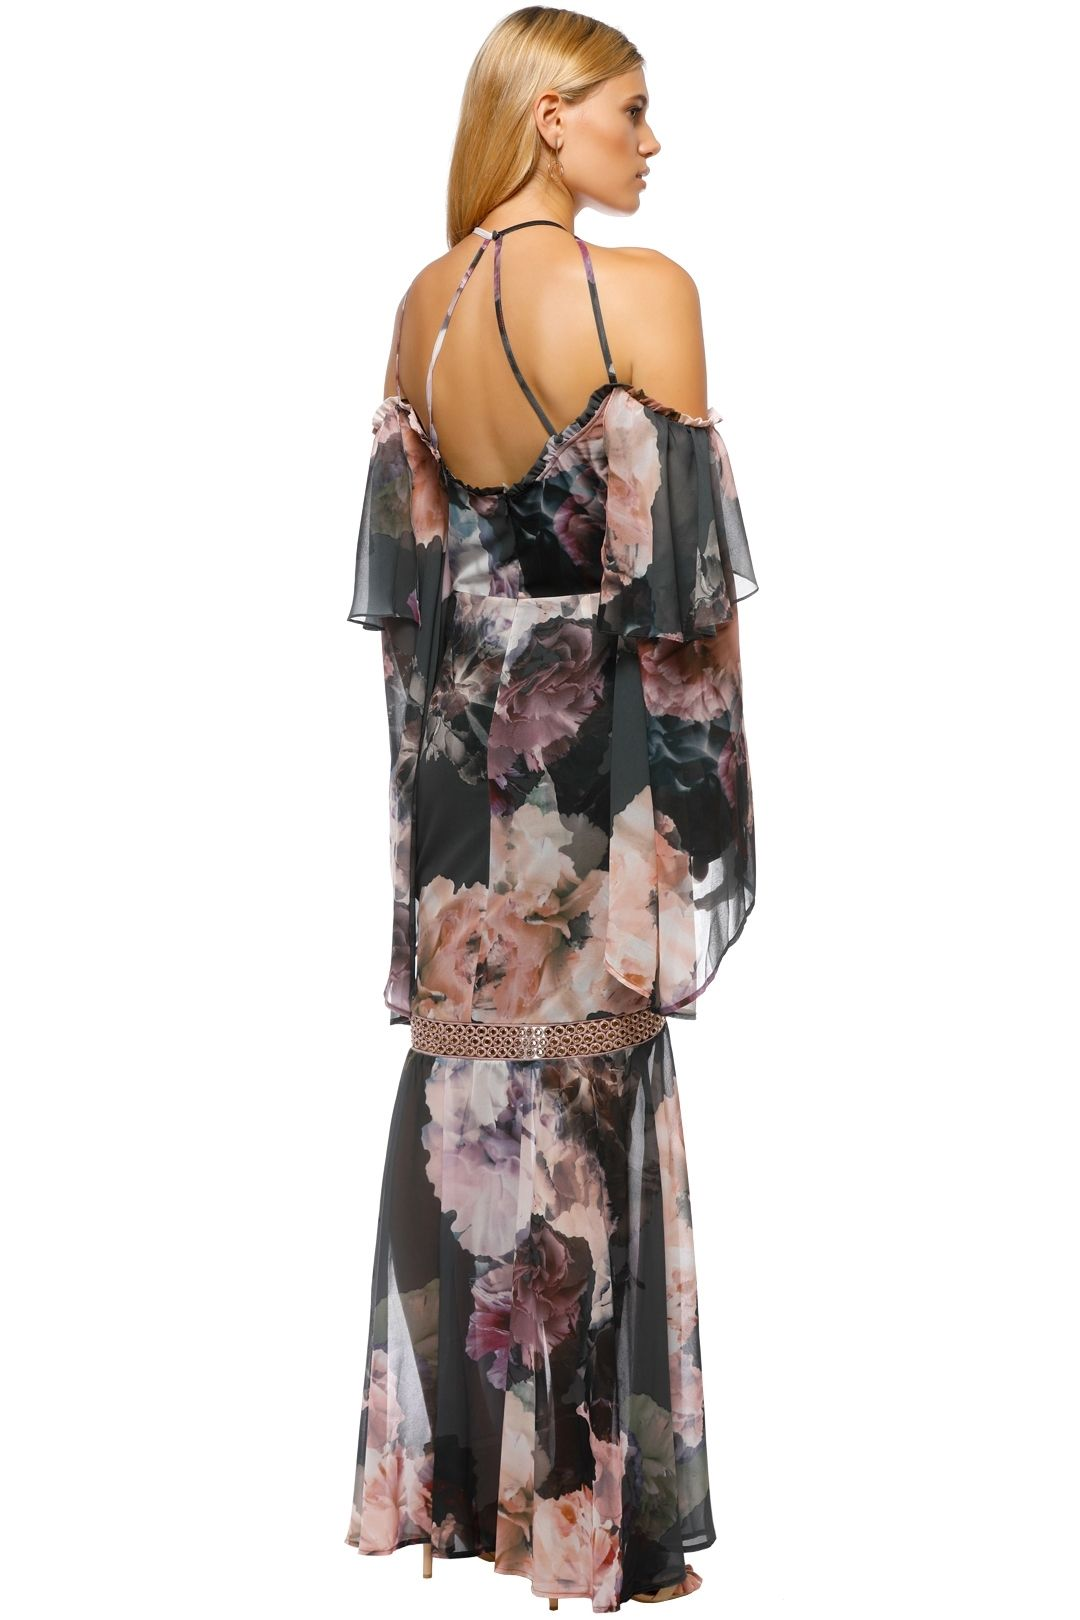 We Are Kindred - Valentina Split Maxi Dress - Gray Pink Floral - Back